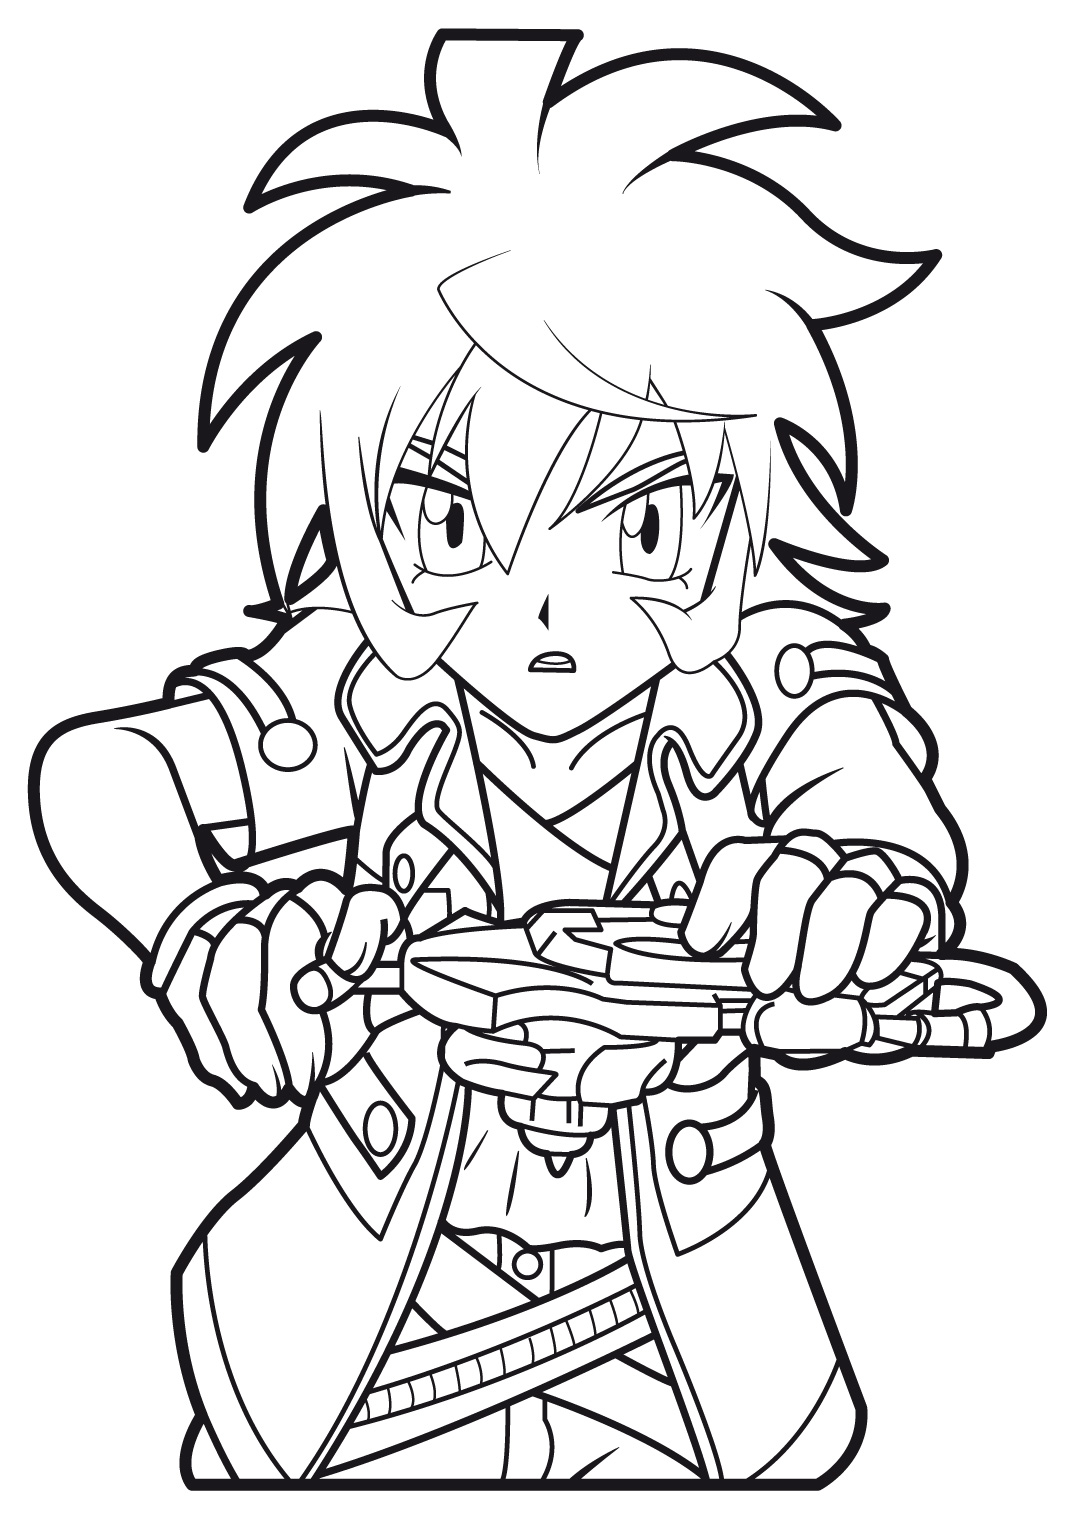 beyblade coloring pages gingka - photo#27